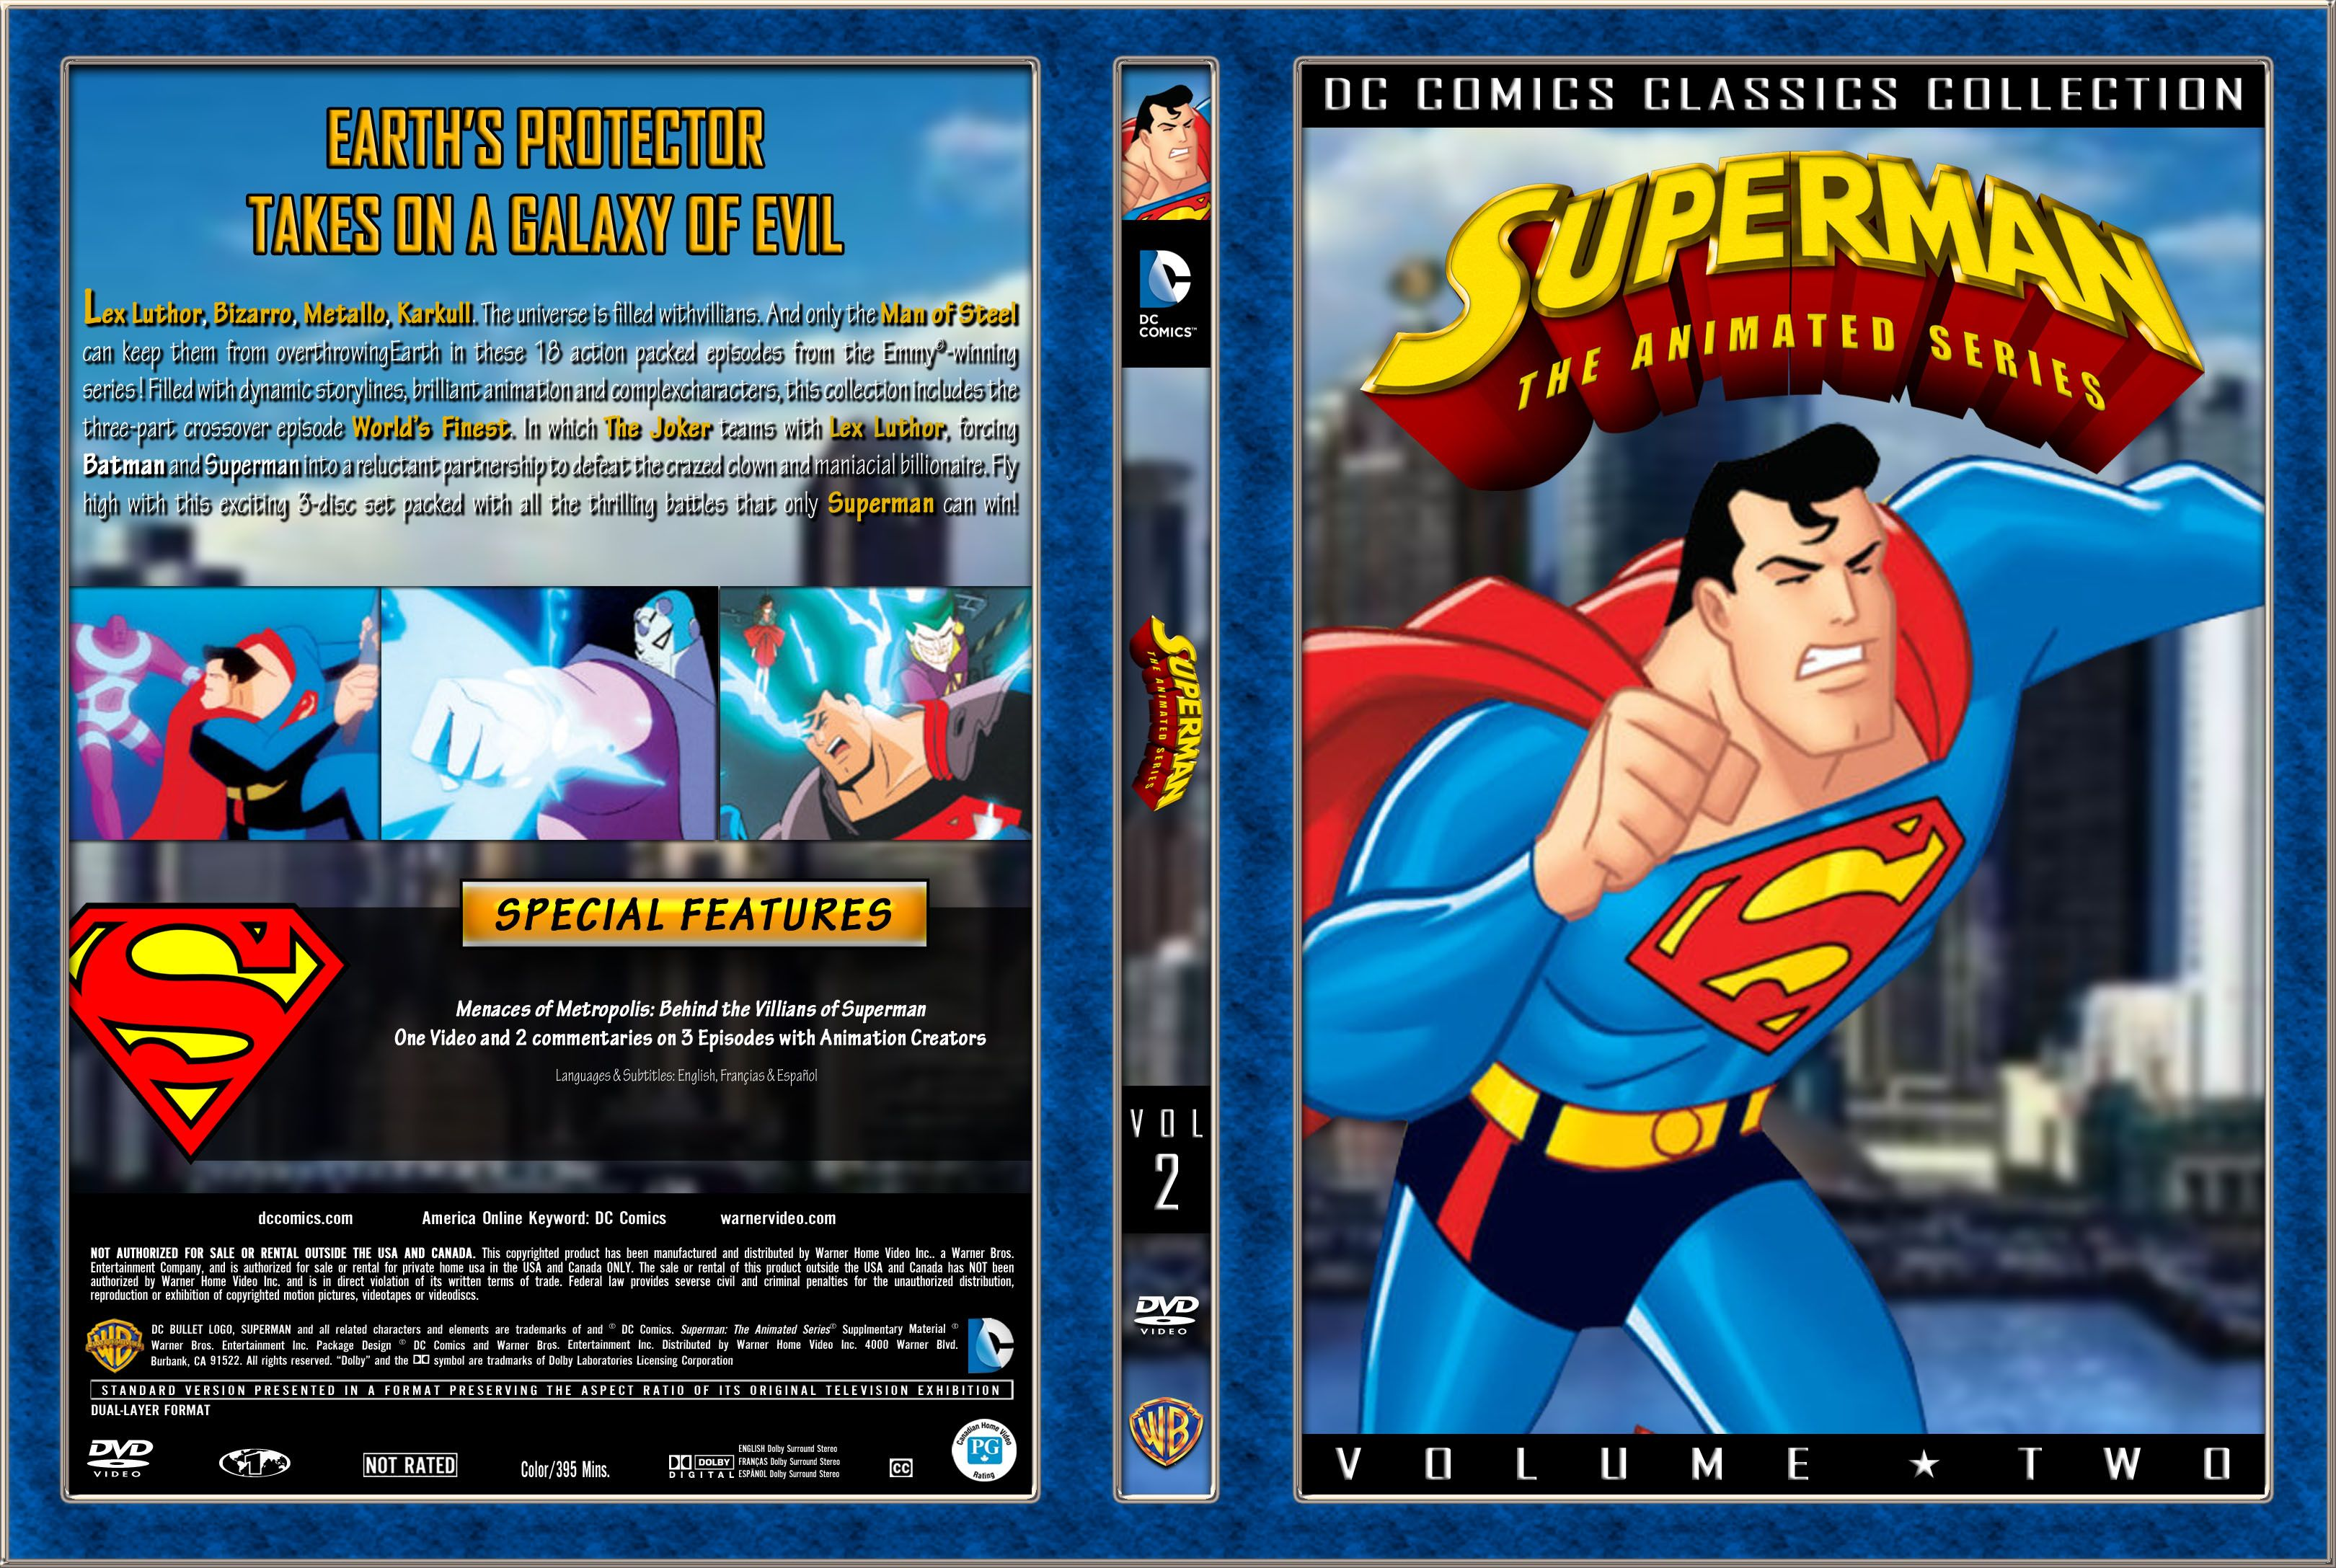 Superman: The Animated Series Volume 2, Custom DVD Cover I did in PhotoShop.